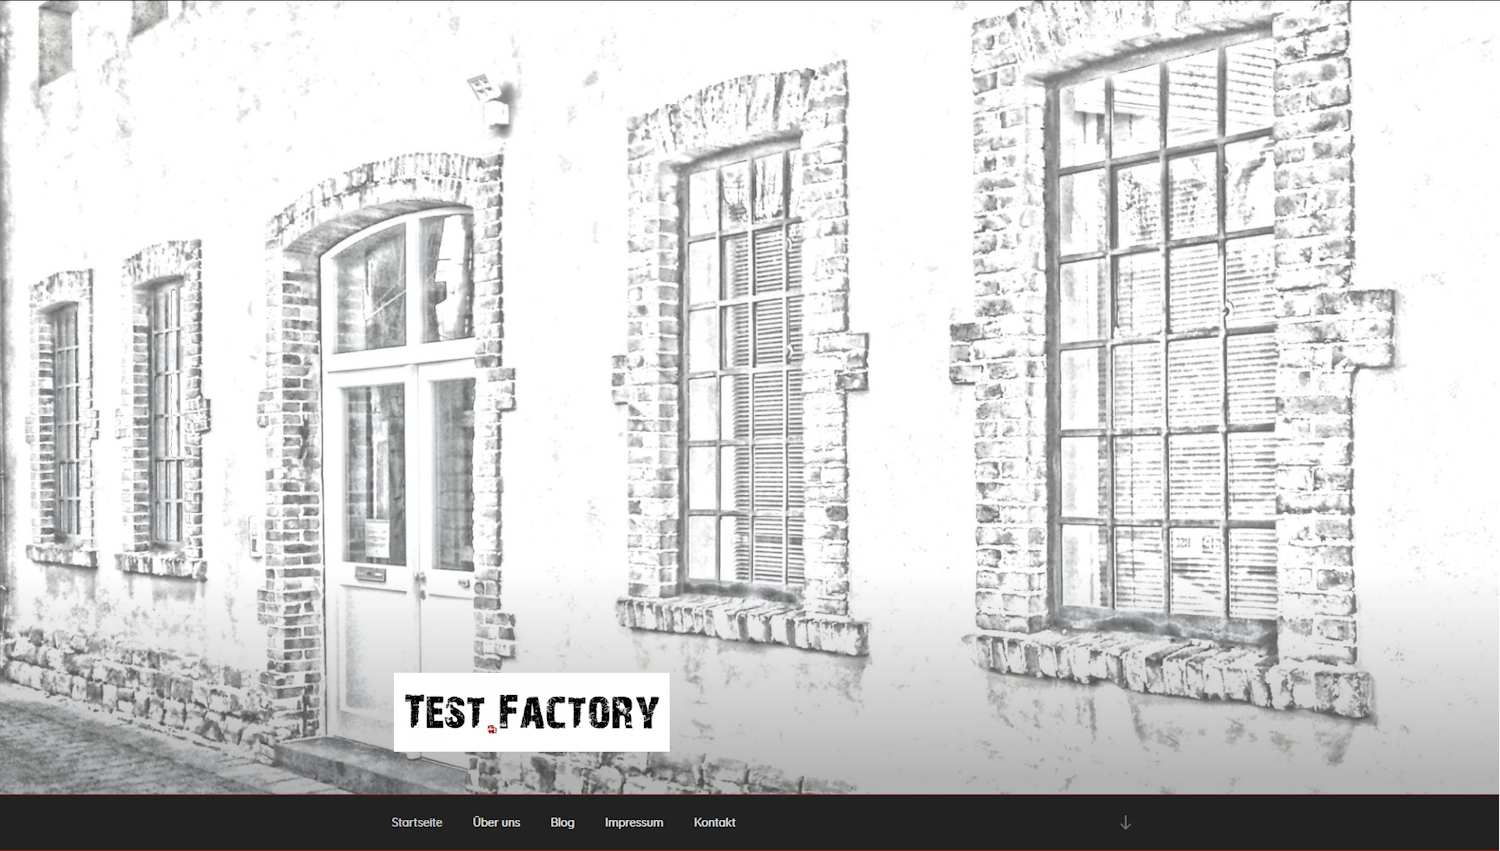 test.factory goes online